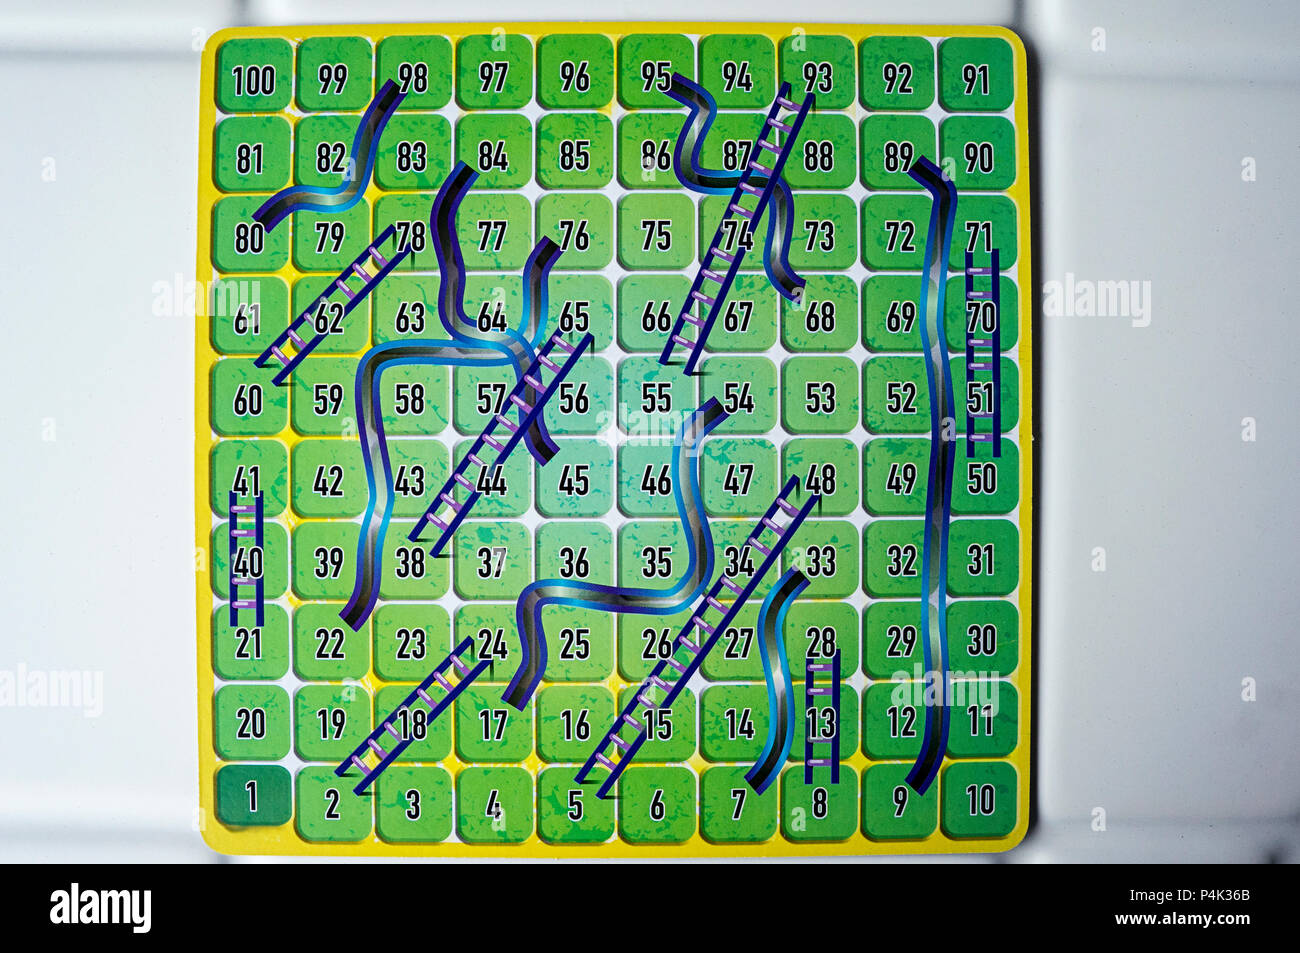 chutes ladders board game competition numbers stock photo 209402659